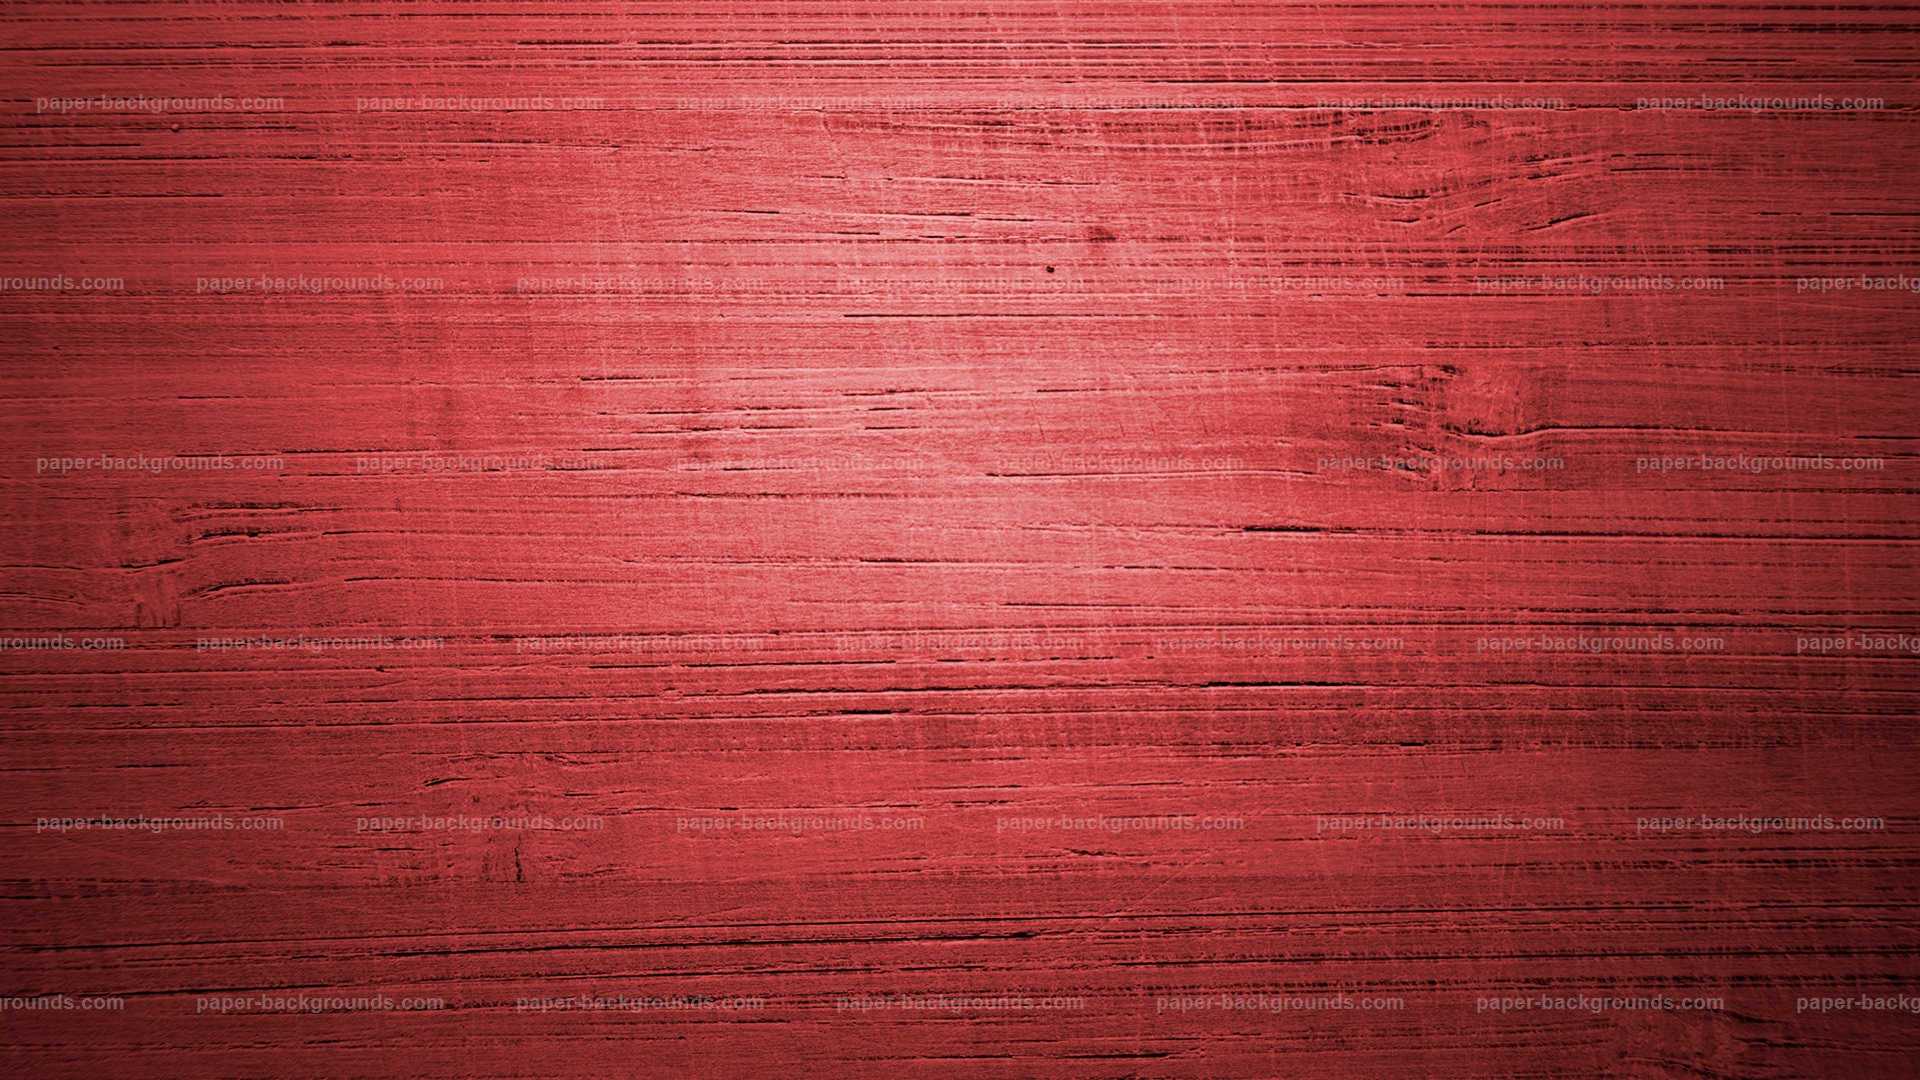 Red wood texture background hd 1920 x 1080p